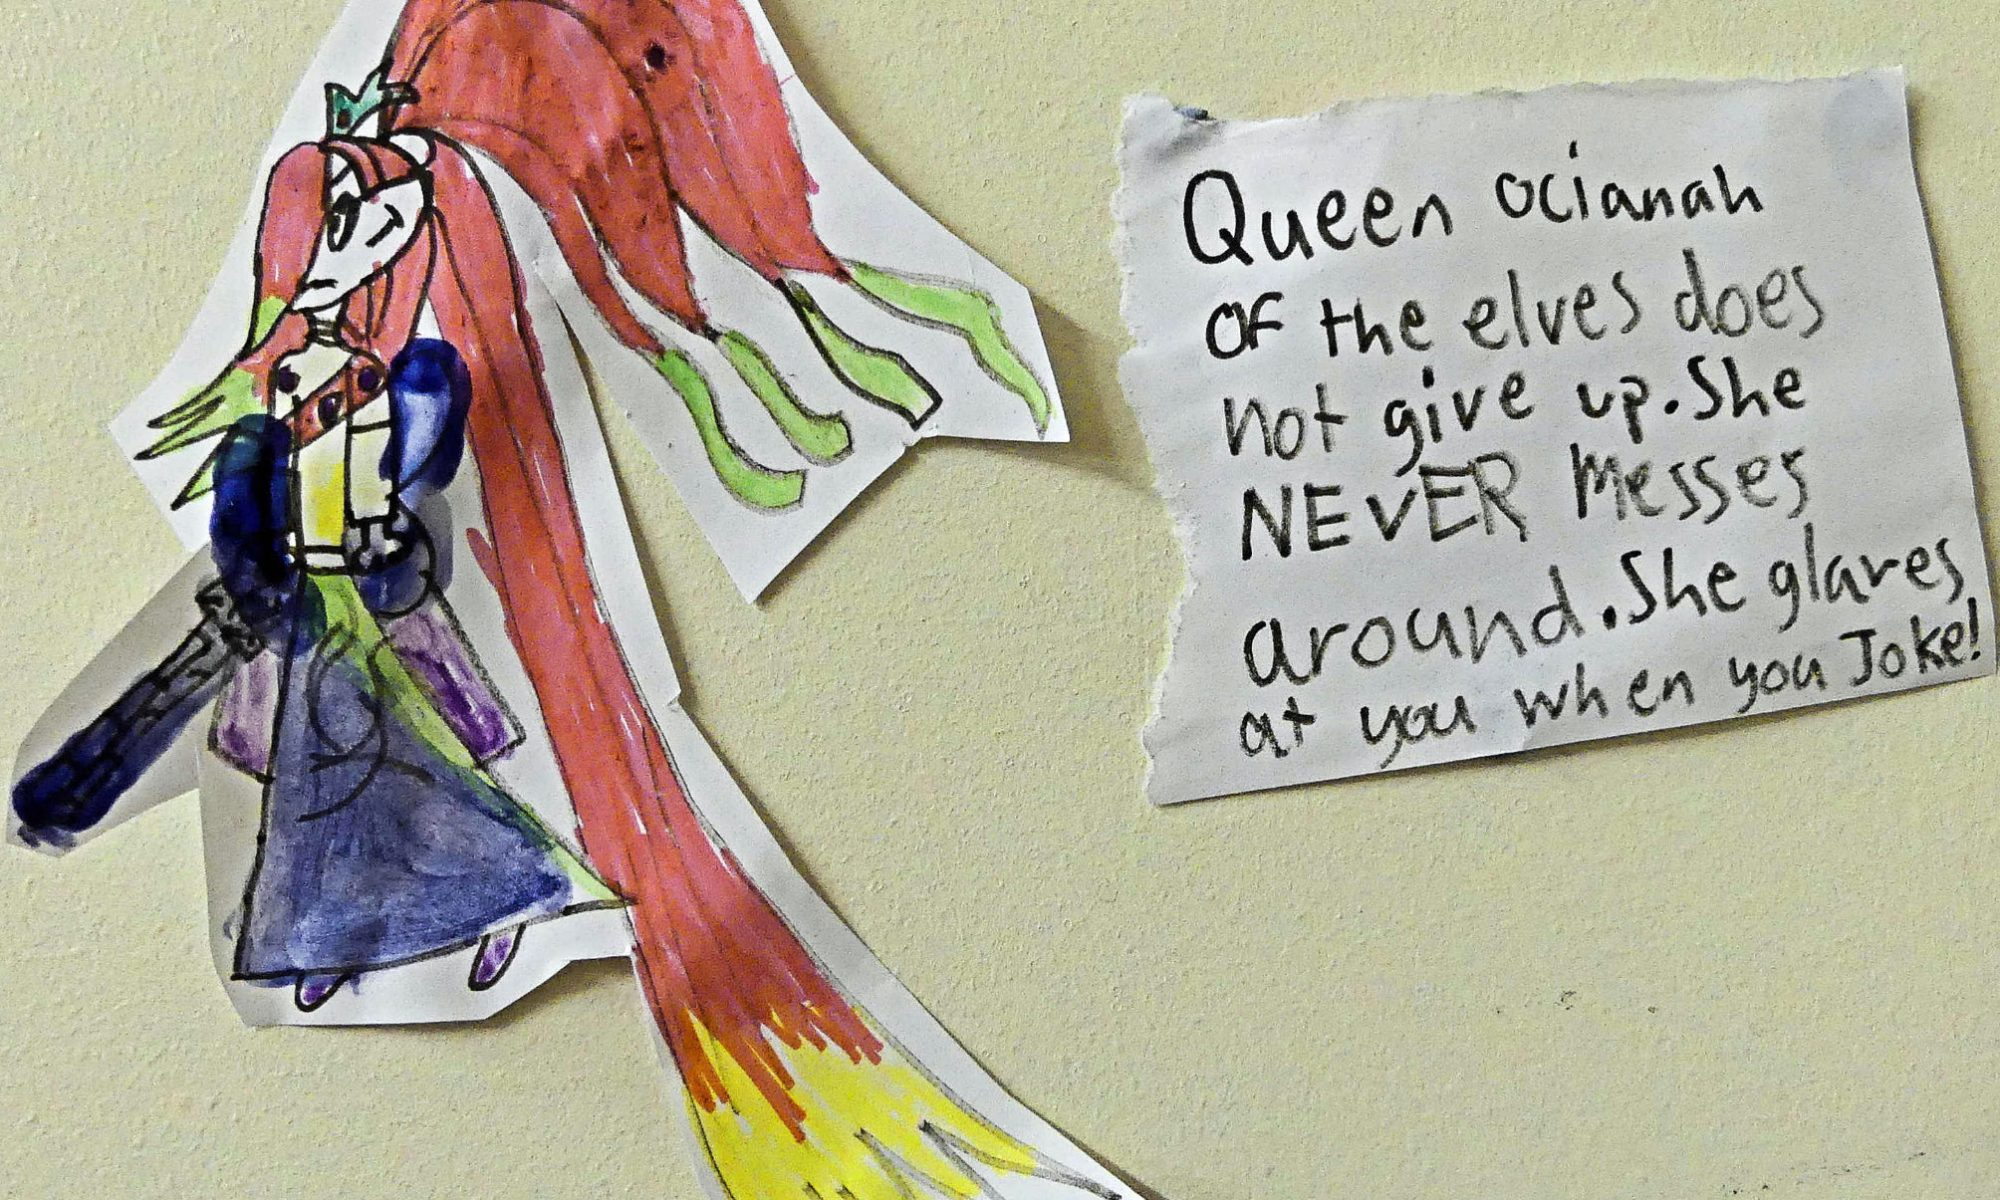 Queen Ocianah of the Elves does not give up. She NEVER MESSES around. She glares at you when you make a joke.